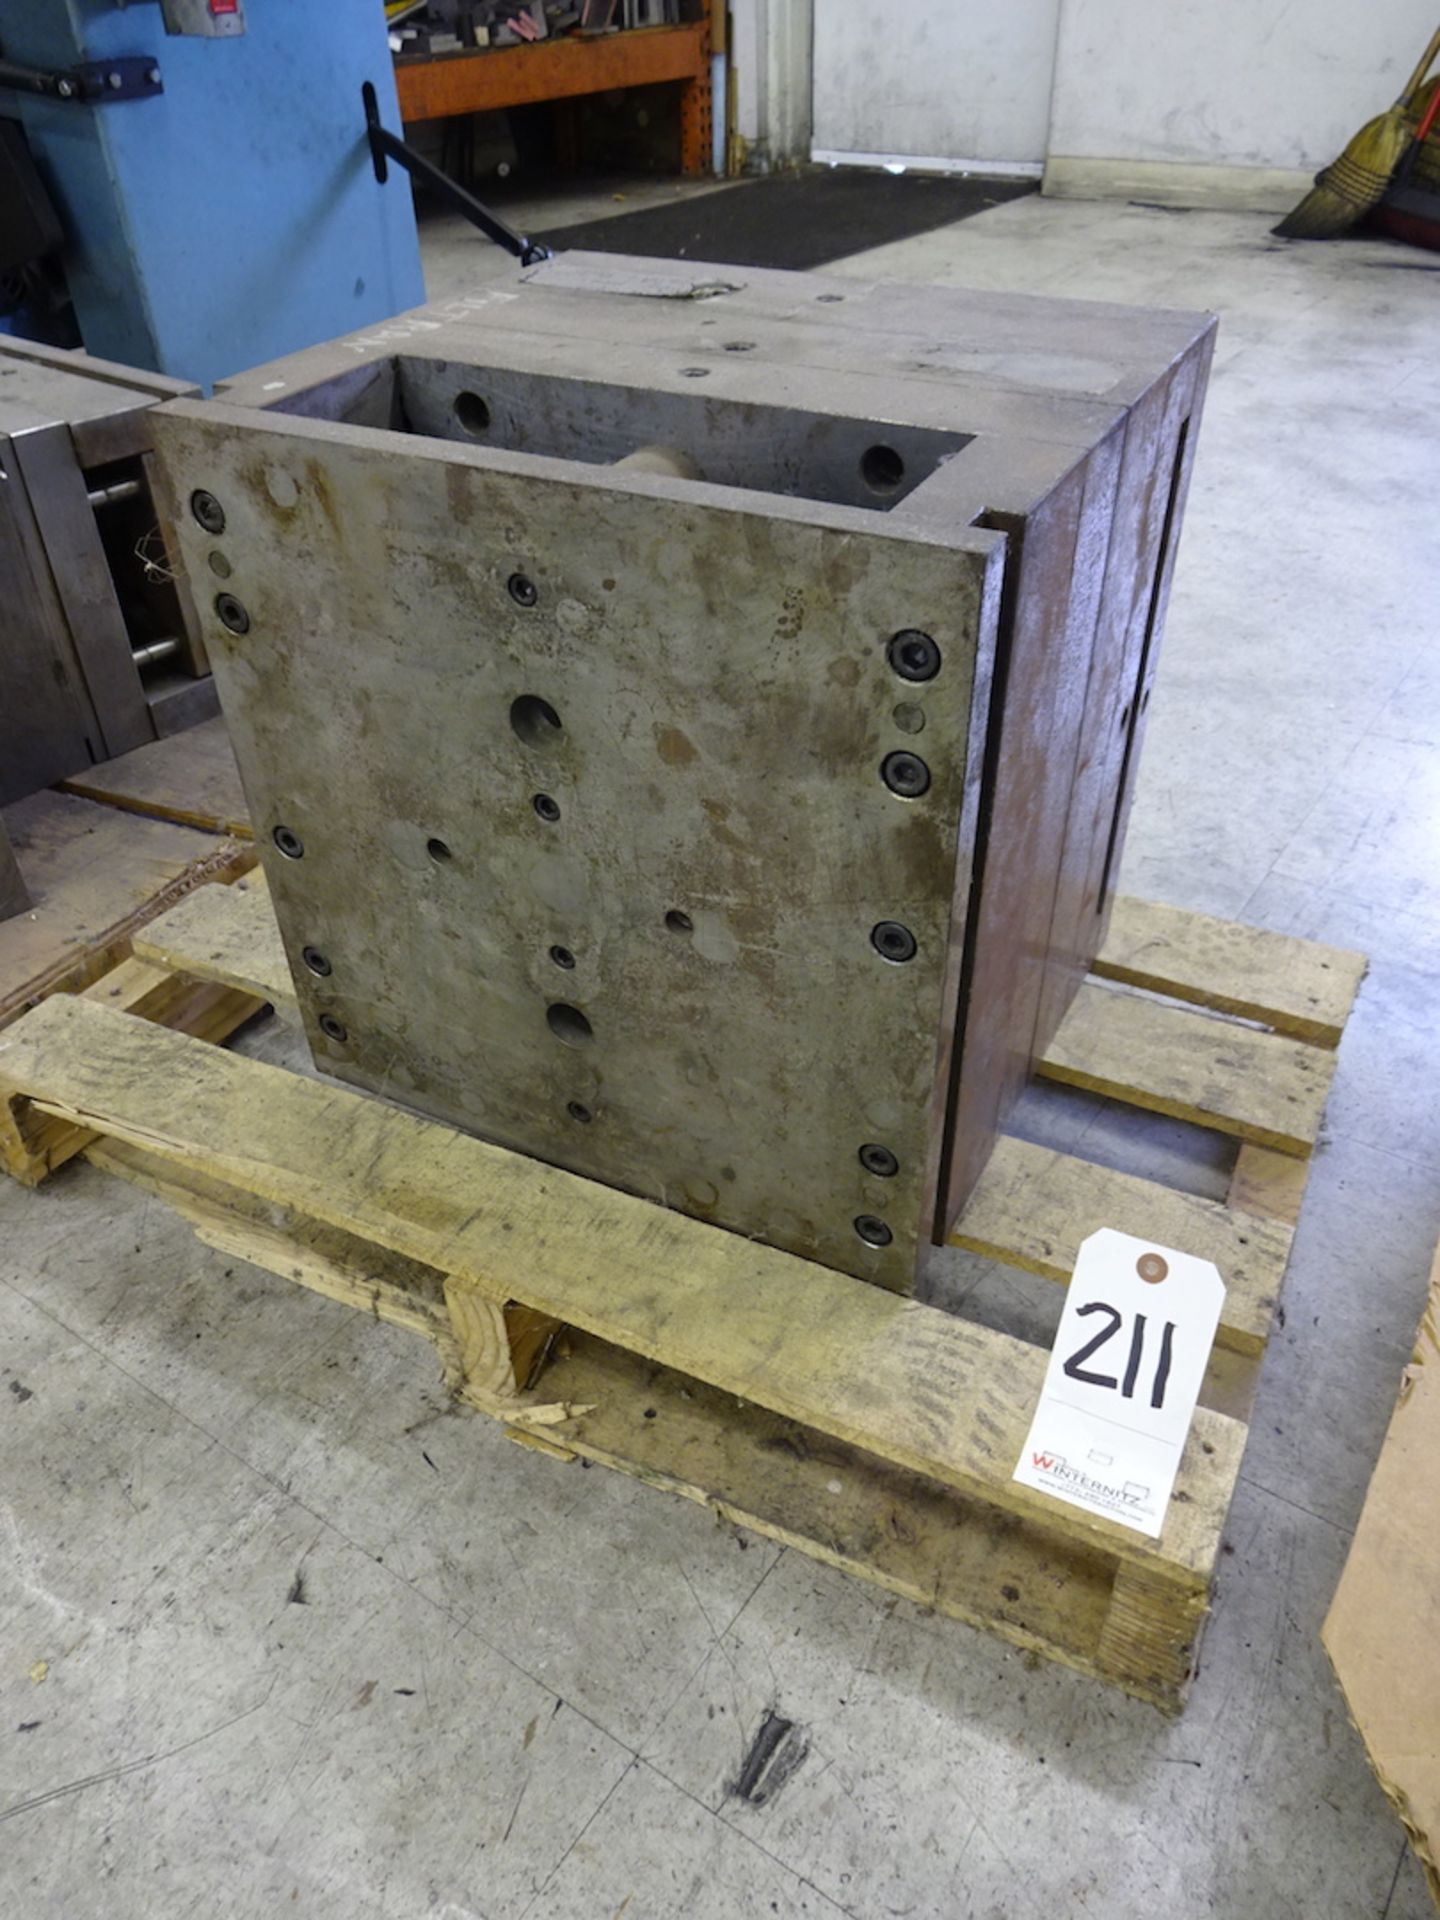 Lot 211 - Plastic Injection Mold